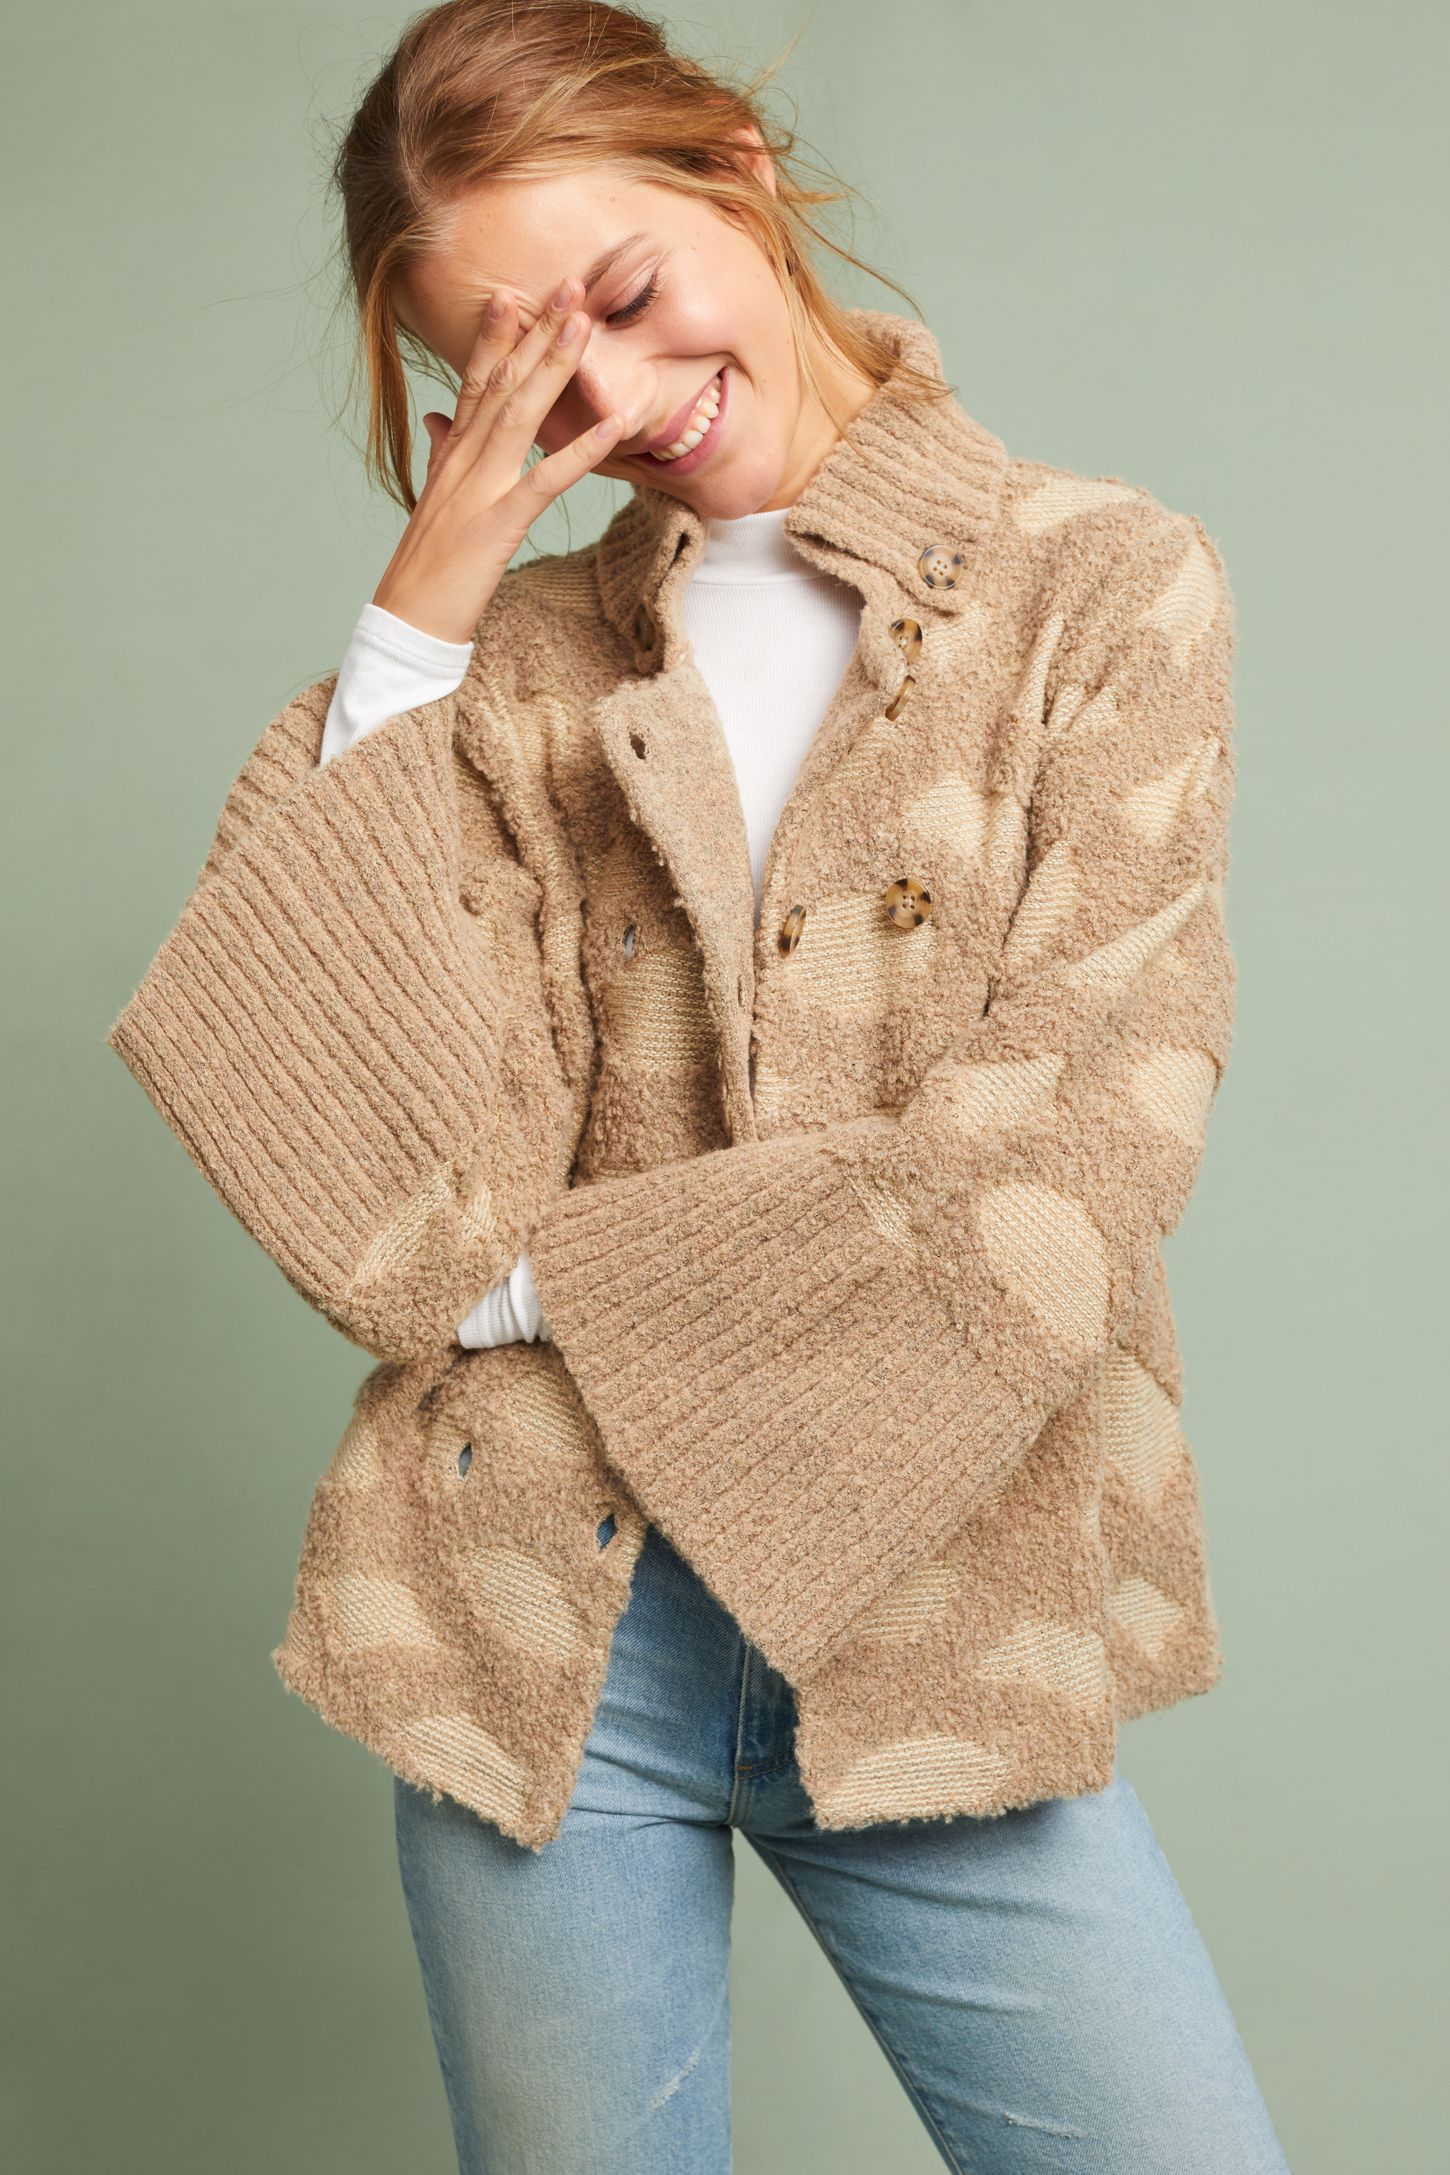 Sweaters for Women & Oversized Sweaters | Anthropologie